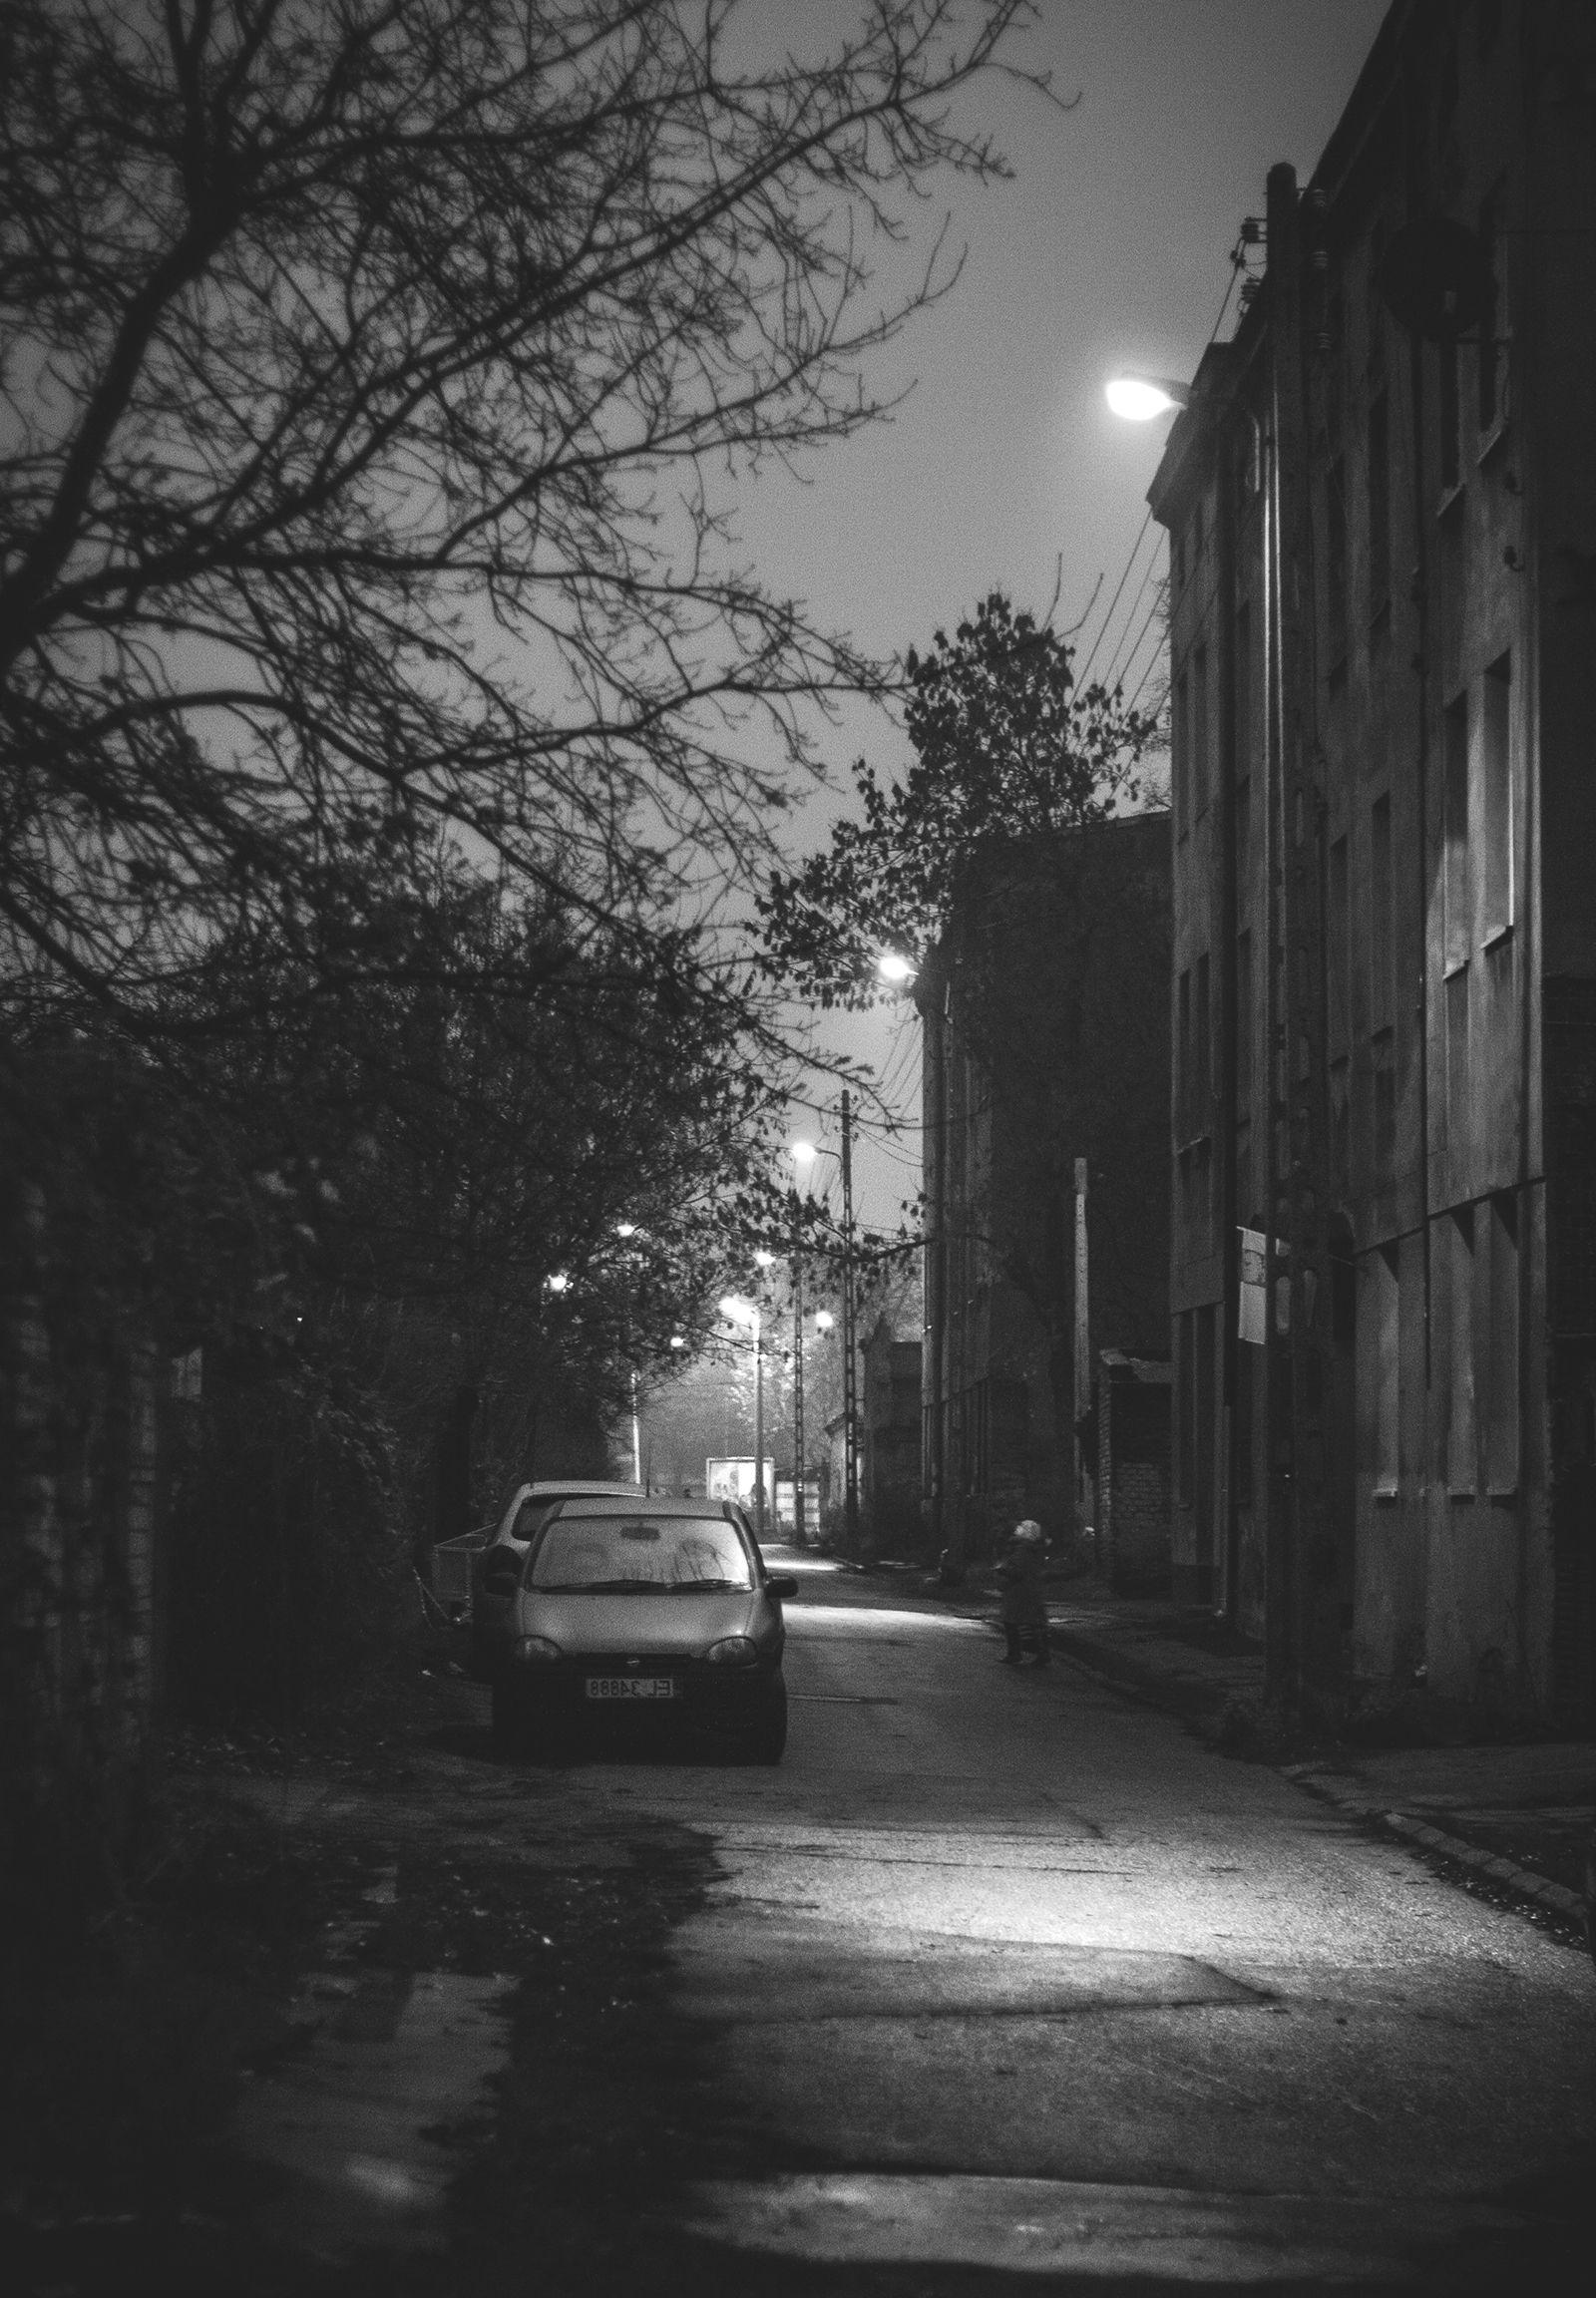 City, Night, Street, Car, Hd Grayscale Image, Monochrome Wallpapers